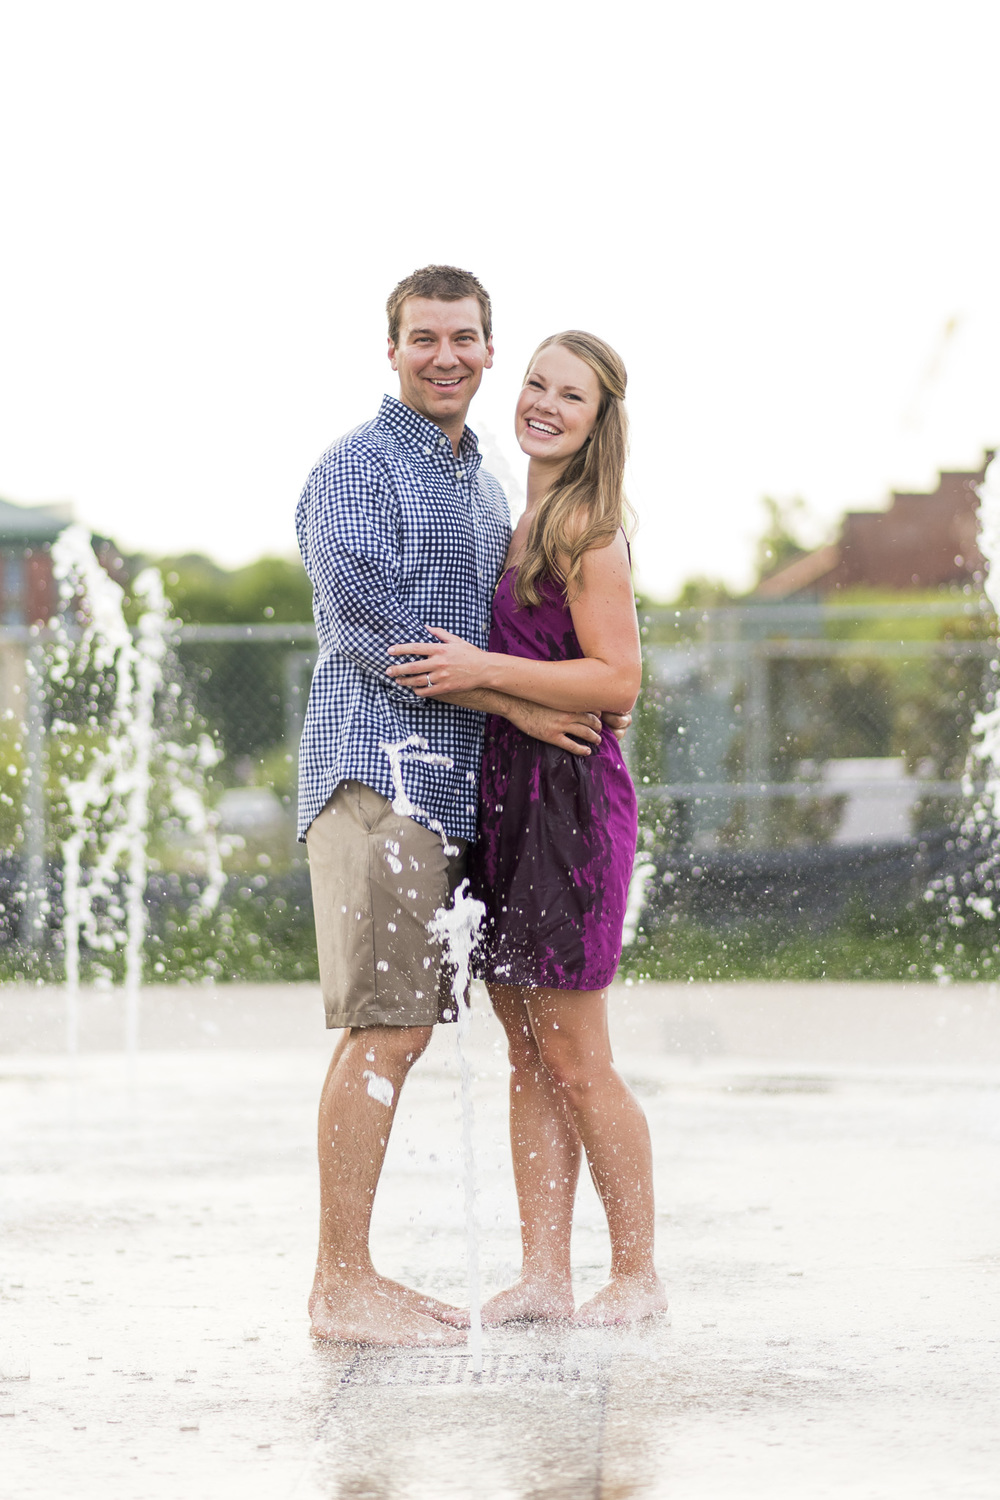 Downtown_Lynchburg_VA_craddock_Terry_Water_Fountain_Engagement_Session_Photos292.jpg